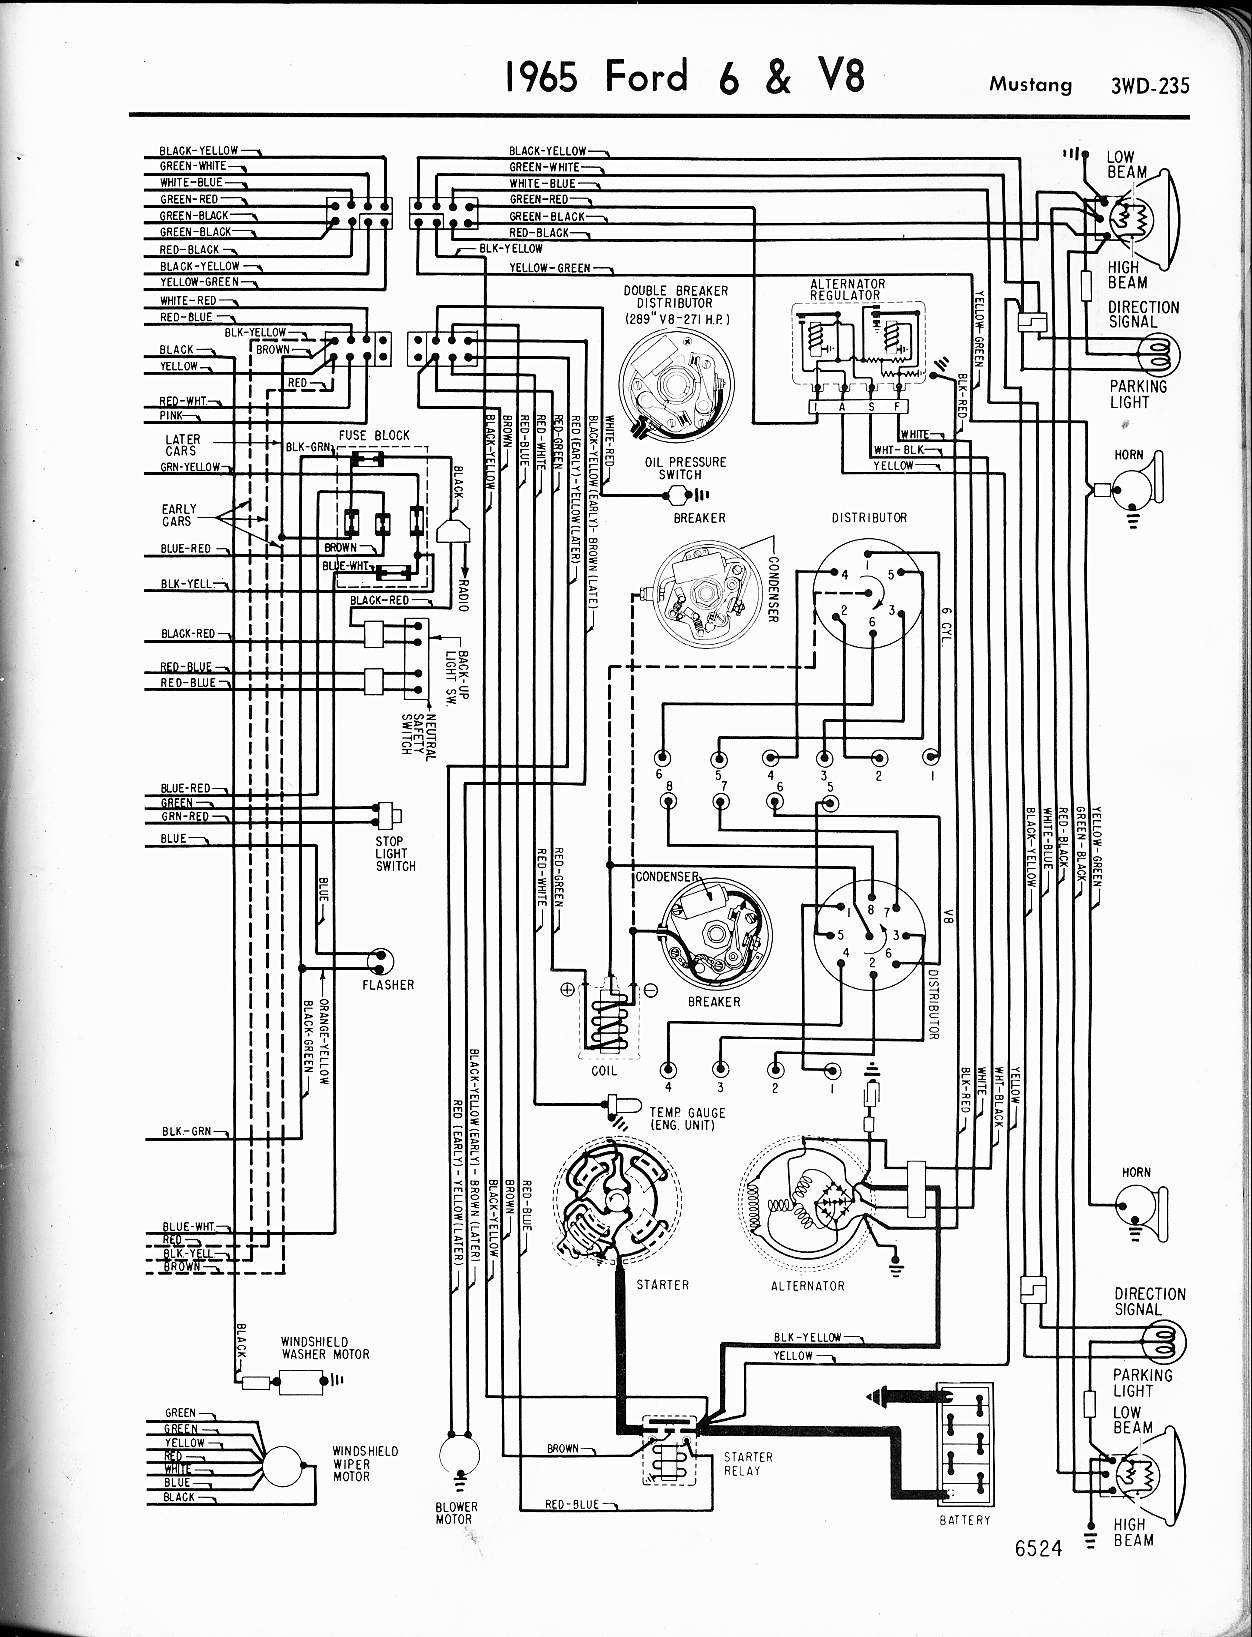 1965_mustang_wiring_2 ford diagrams 1965 mustang complete wiring harness at suagrazia.org